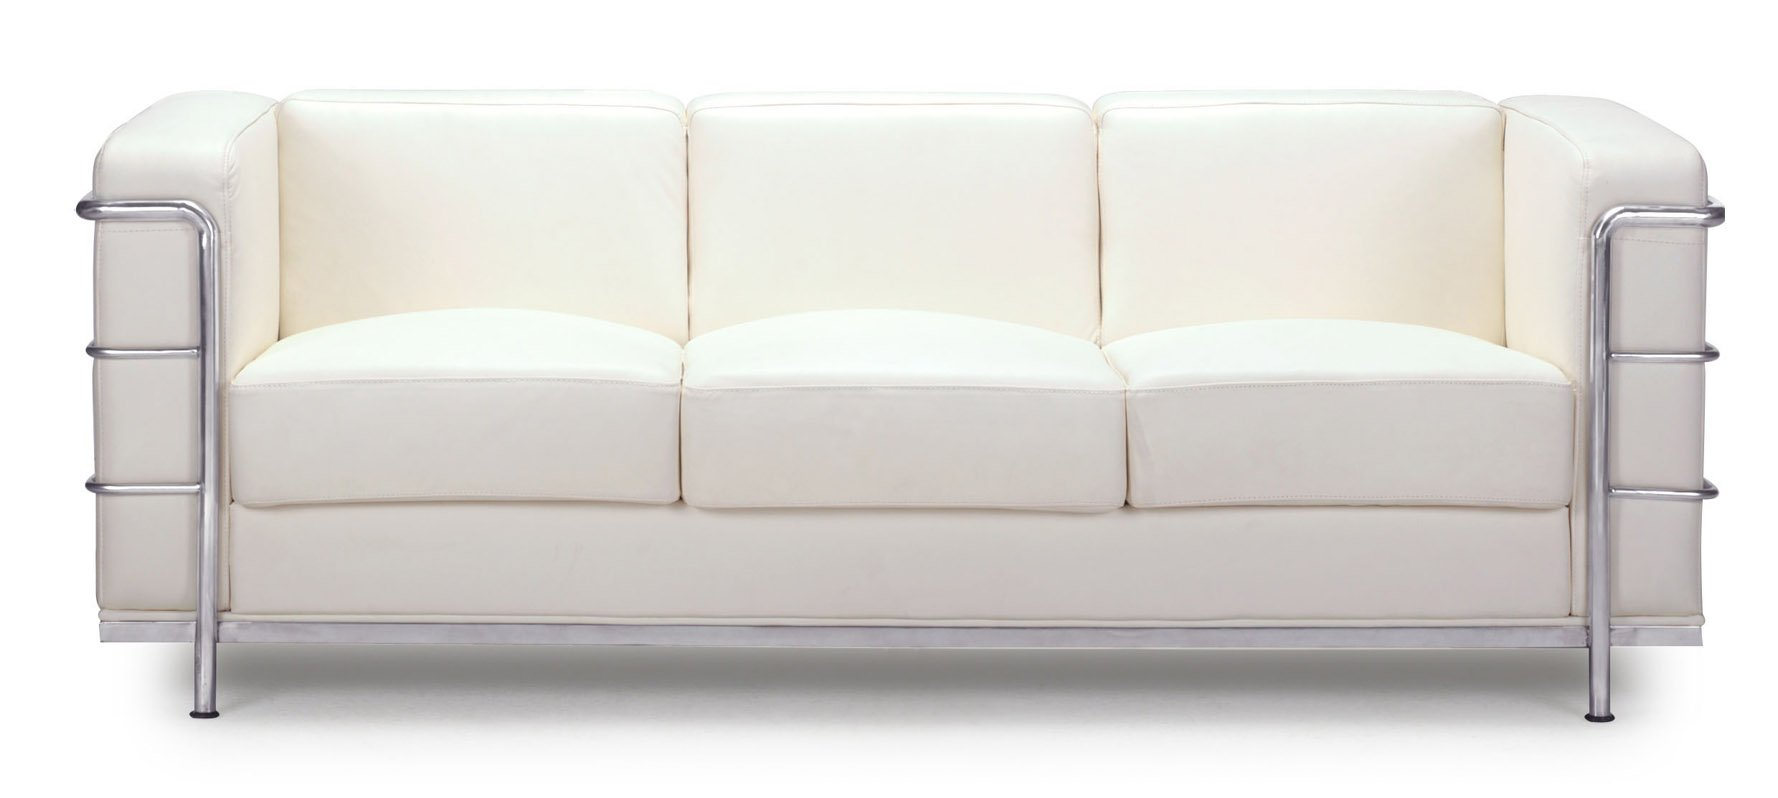 Renny Modern Leather with Chromed Steel Frame Sofa - White | Zuri ...